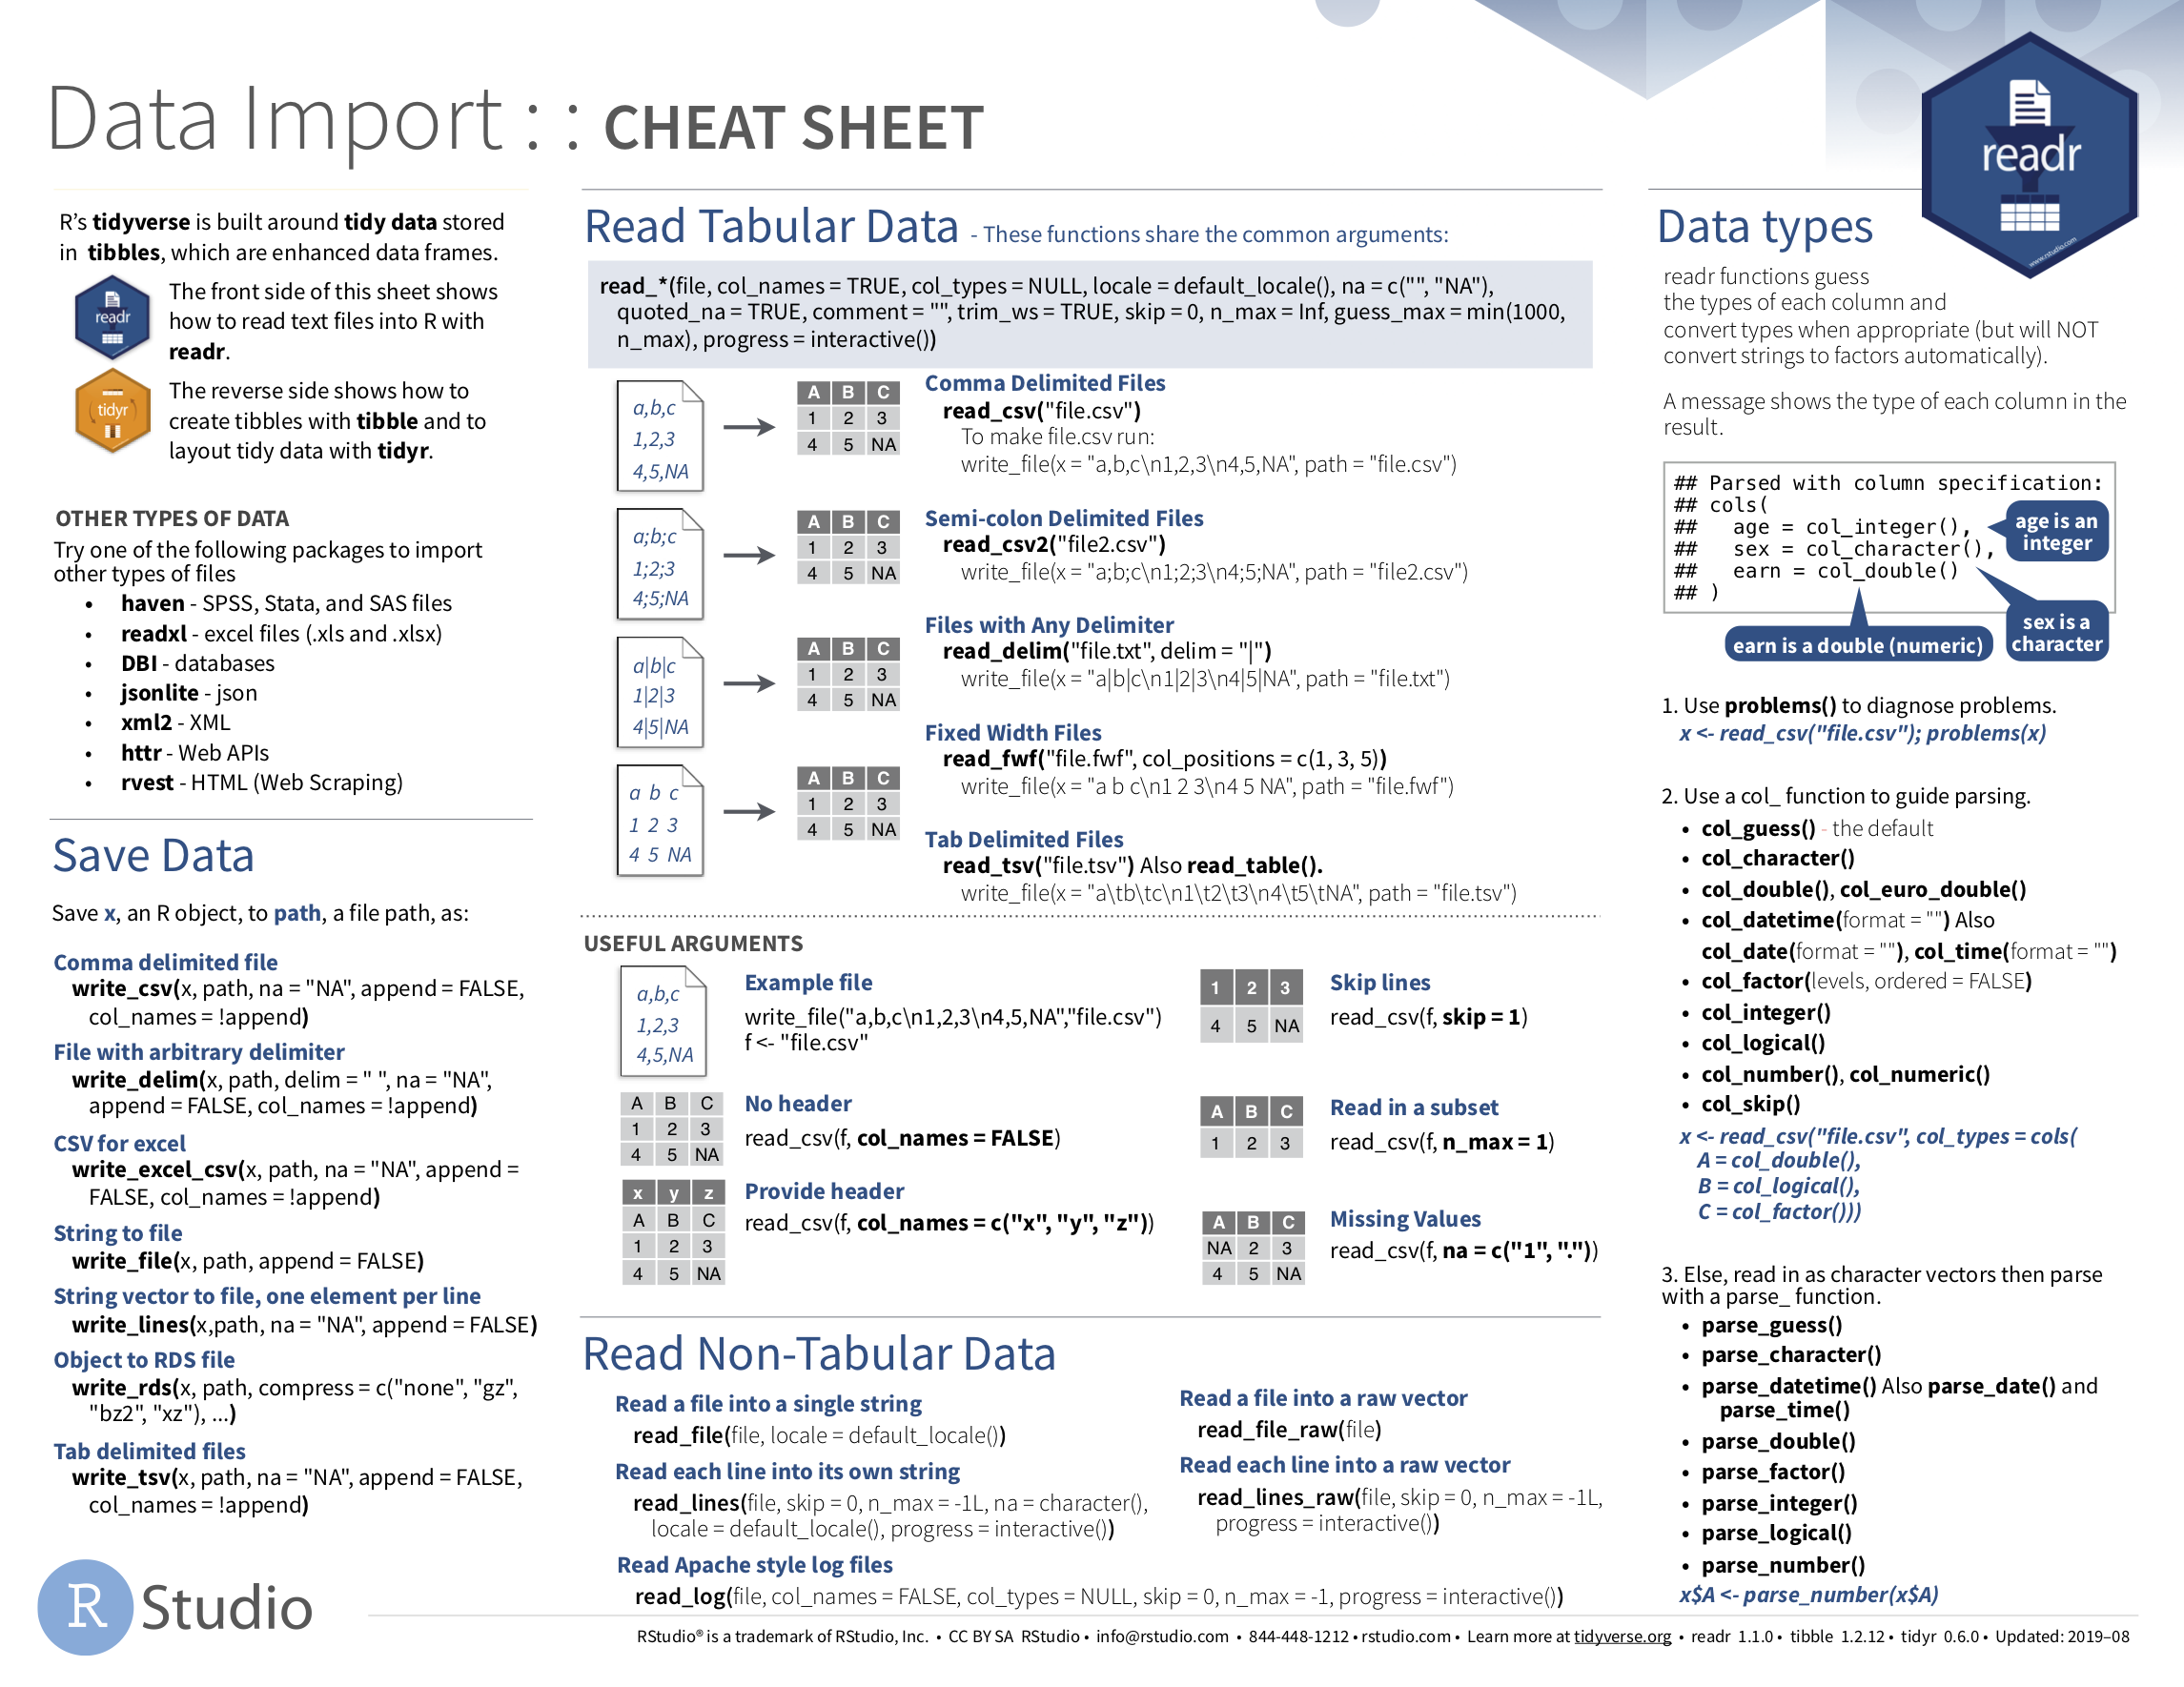 Data Import cheatsheet (first page): readr package.